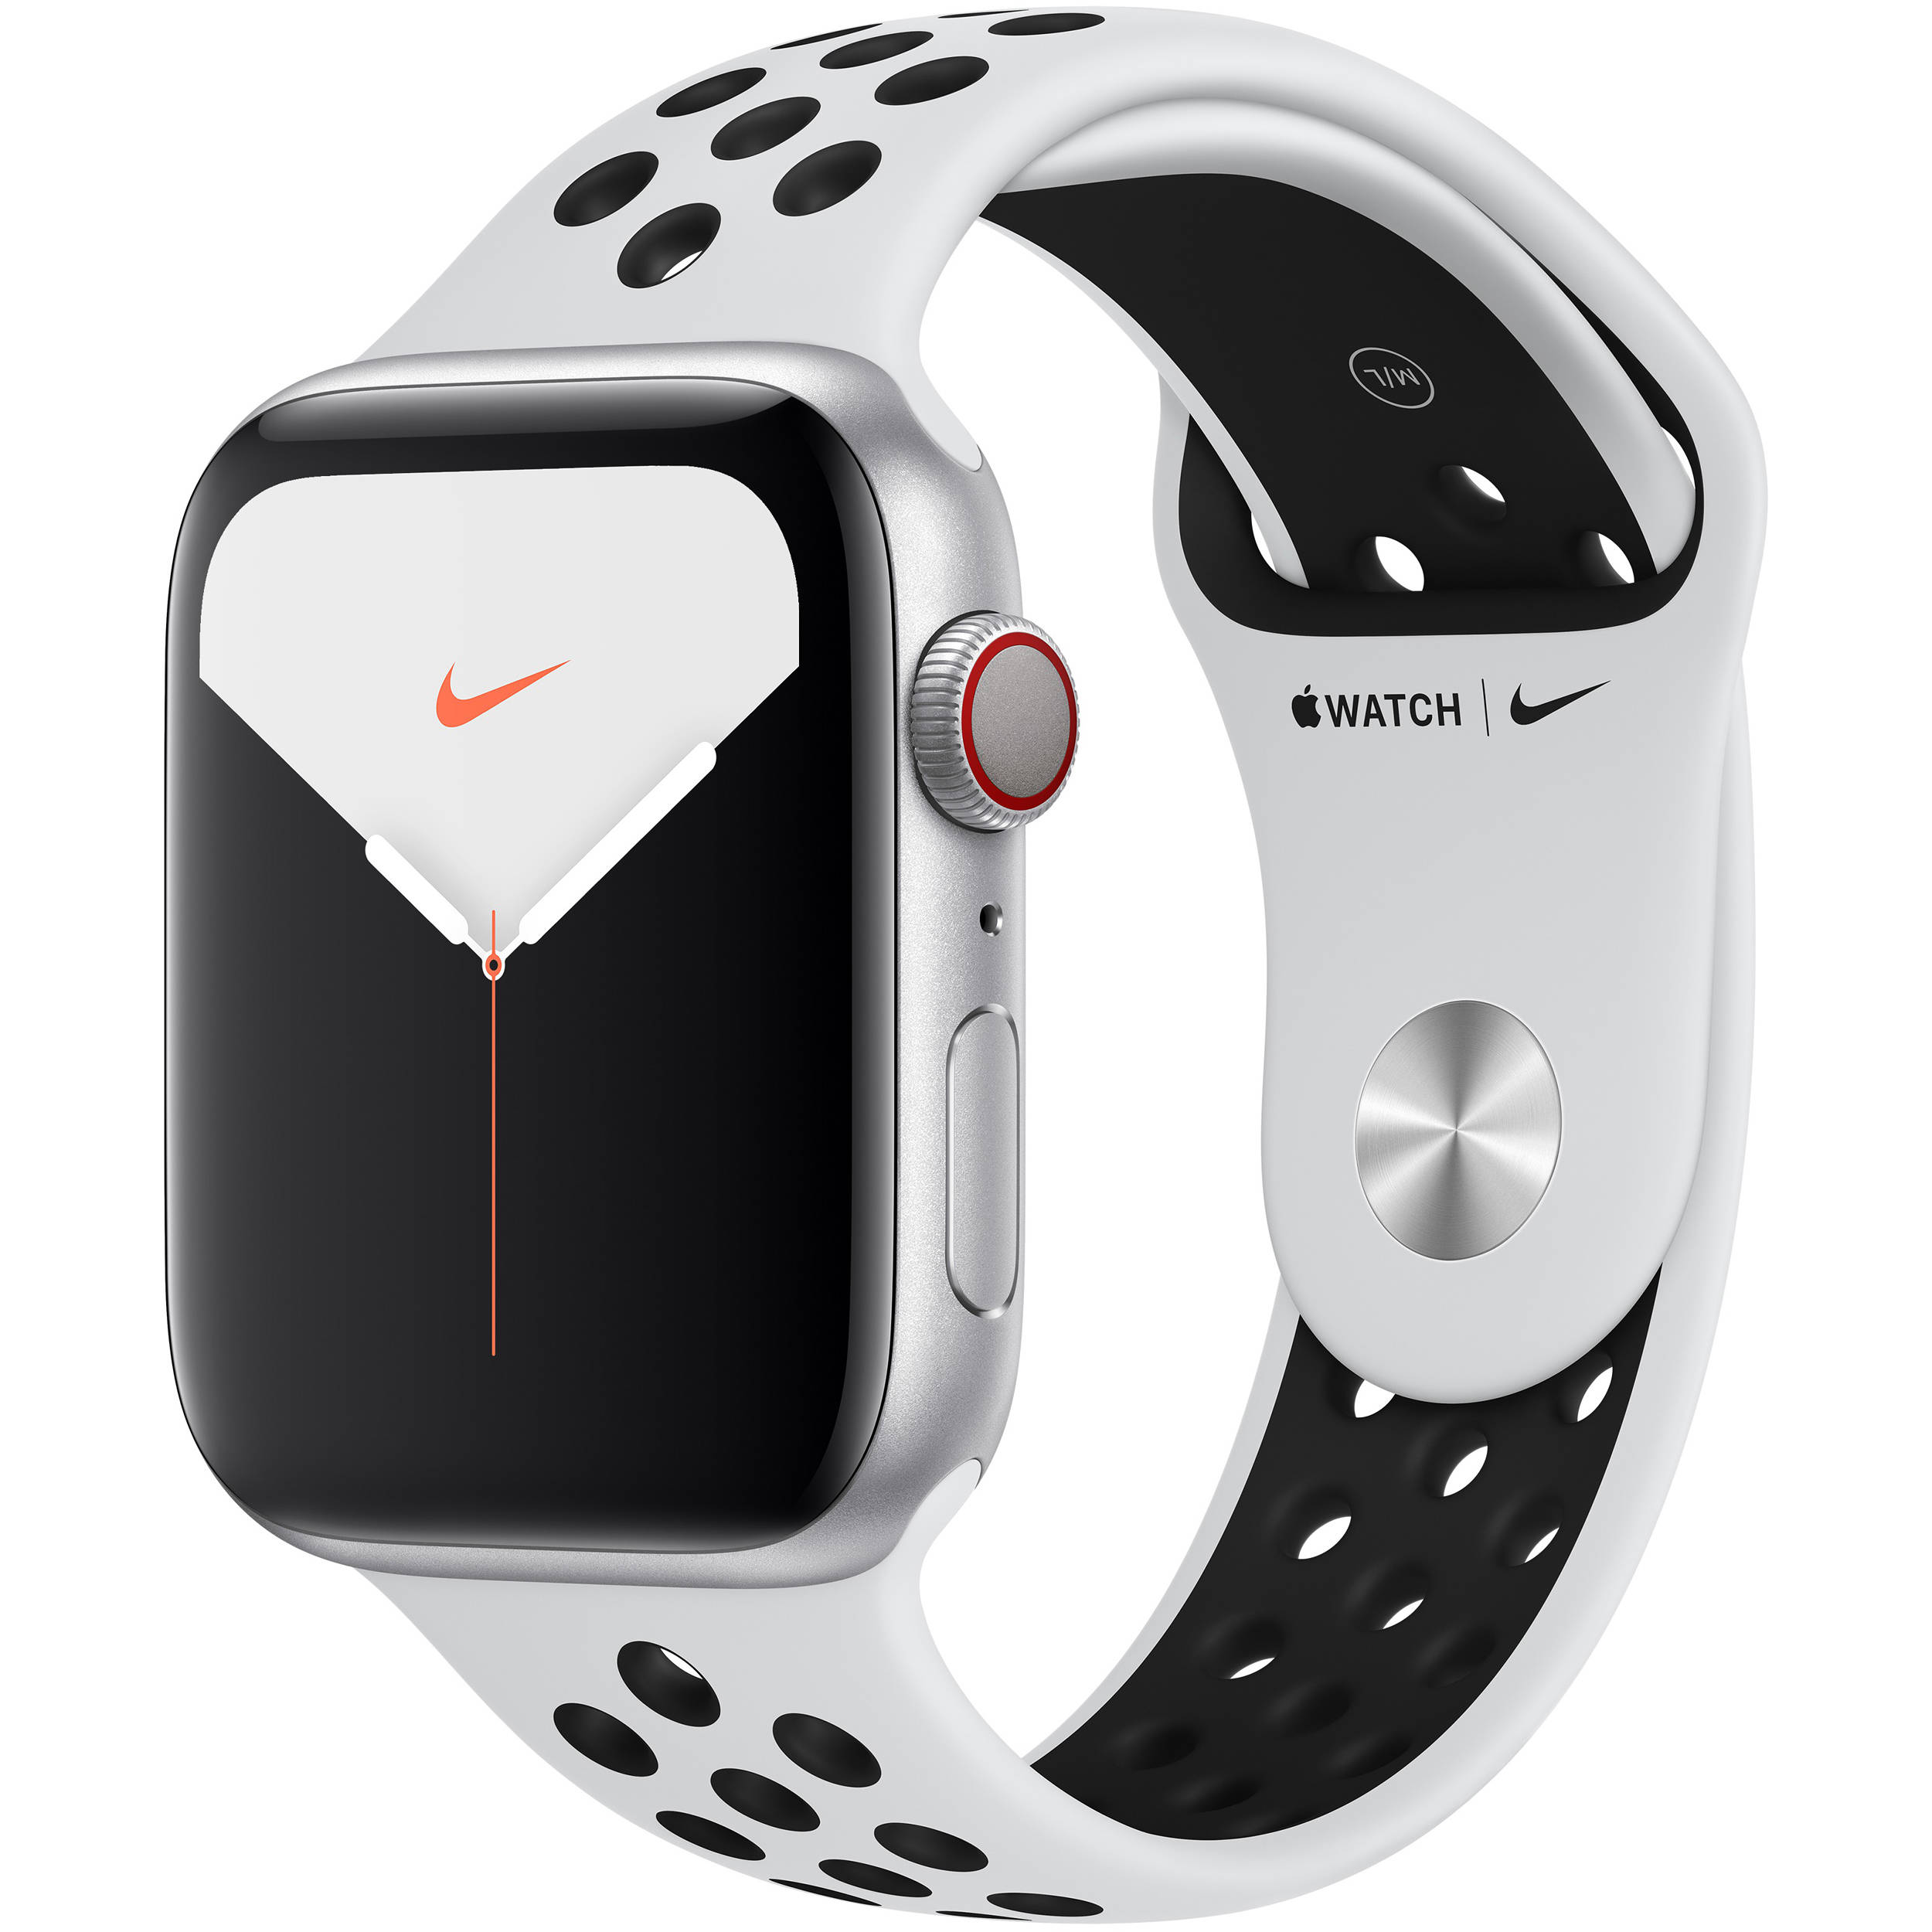 Apple Watch Series 5 (Nike+/GPS + Cell, 44mm, Silver Aluminum, Pure  Platinum/Black Nike Sport Band)